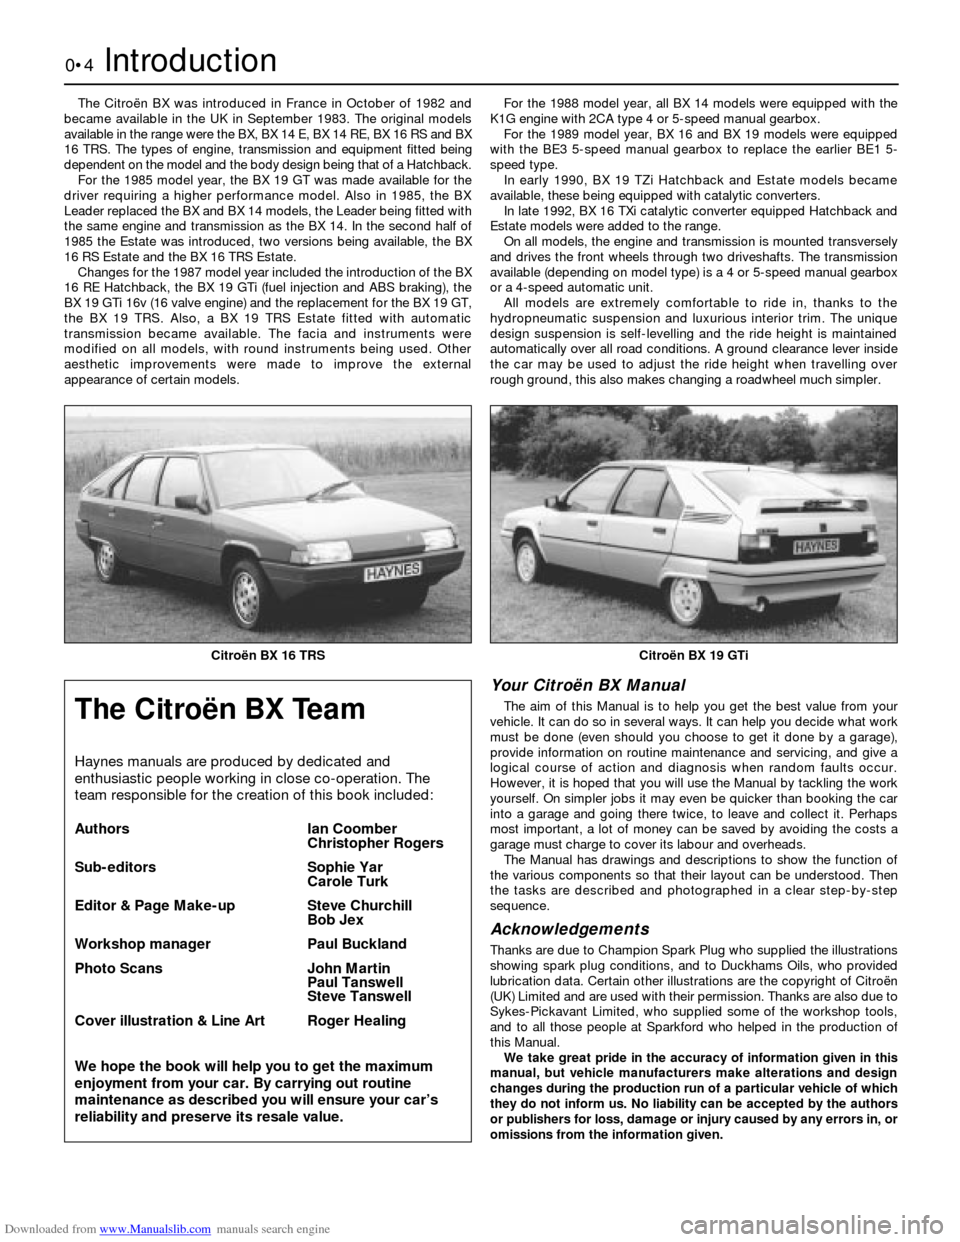 citroen bx 16 service manual open source user manual u2022 rh dramatic varieties com Citroen XM Citroen XM